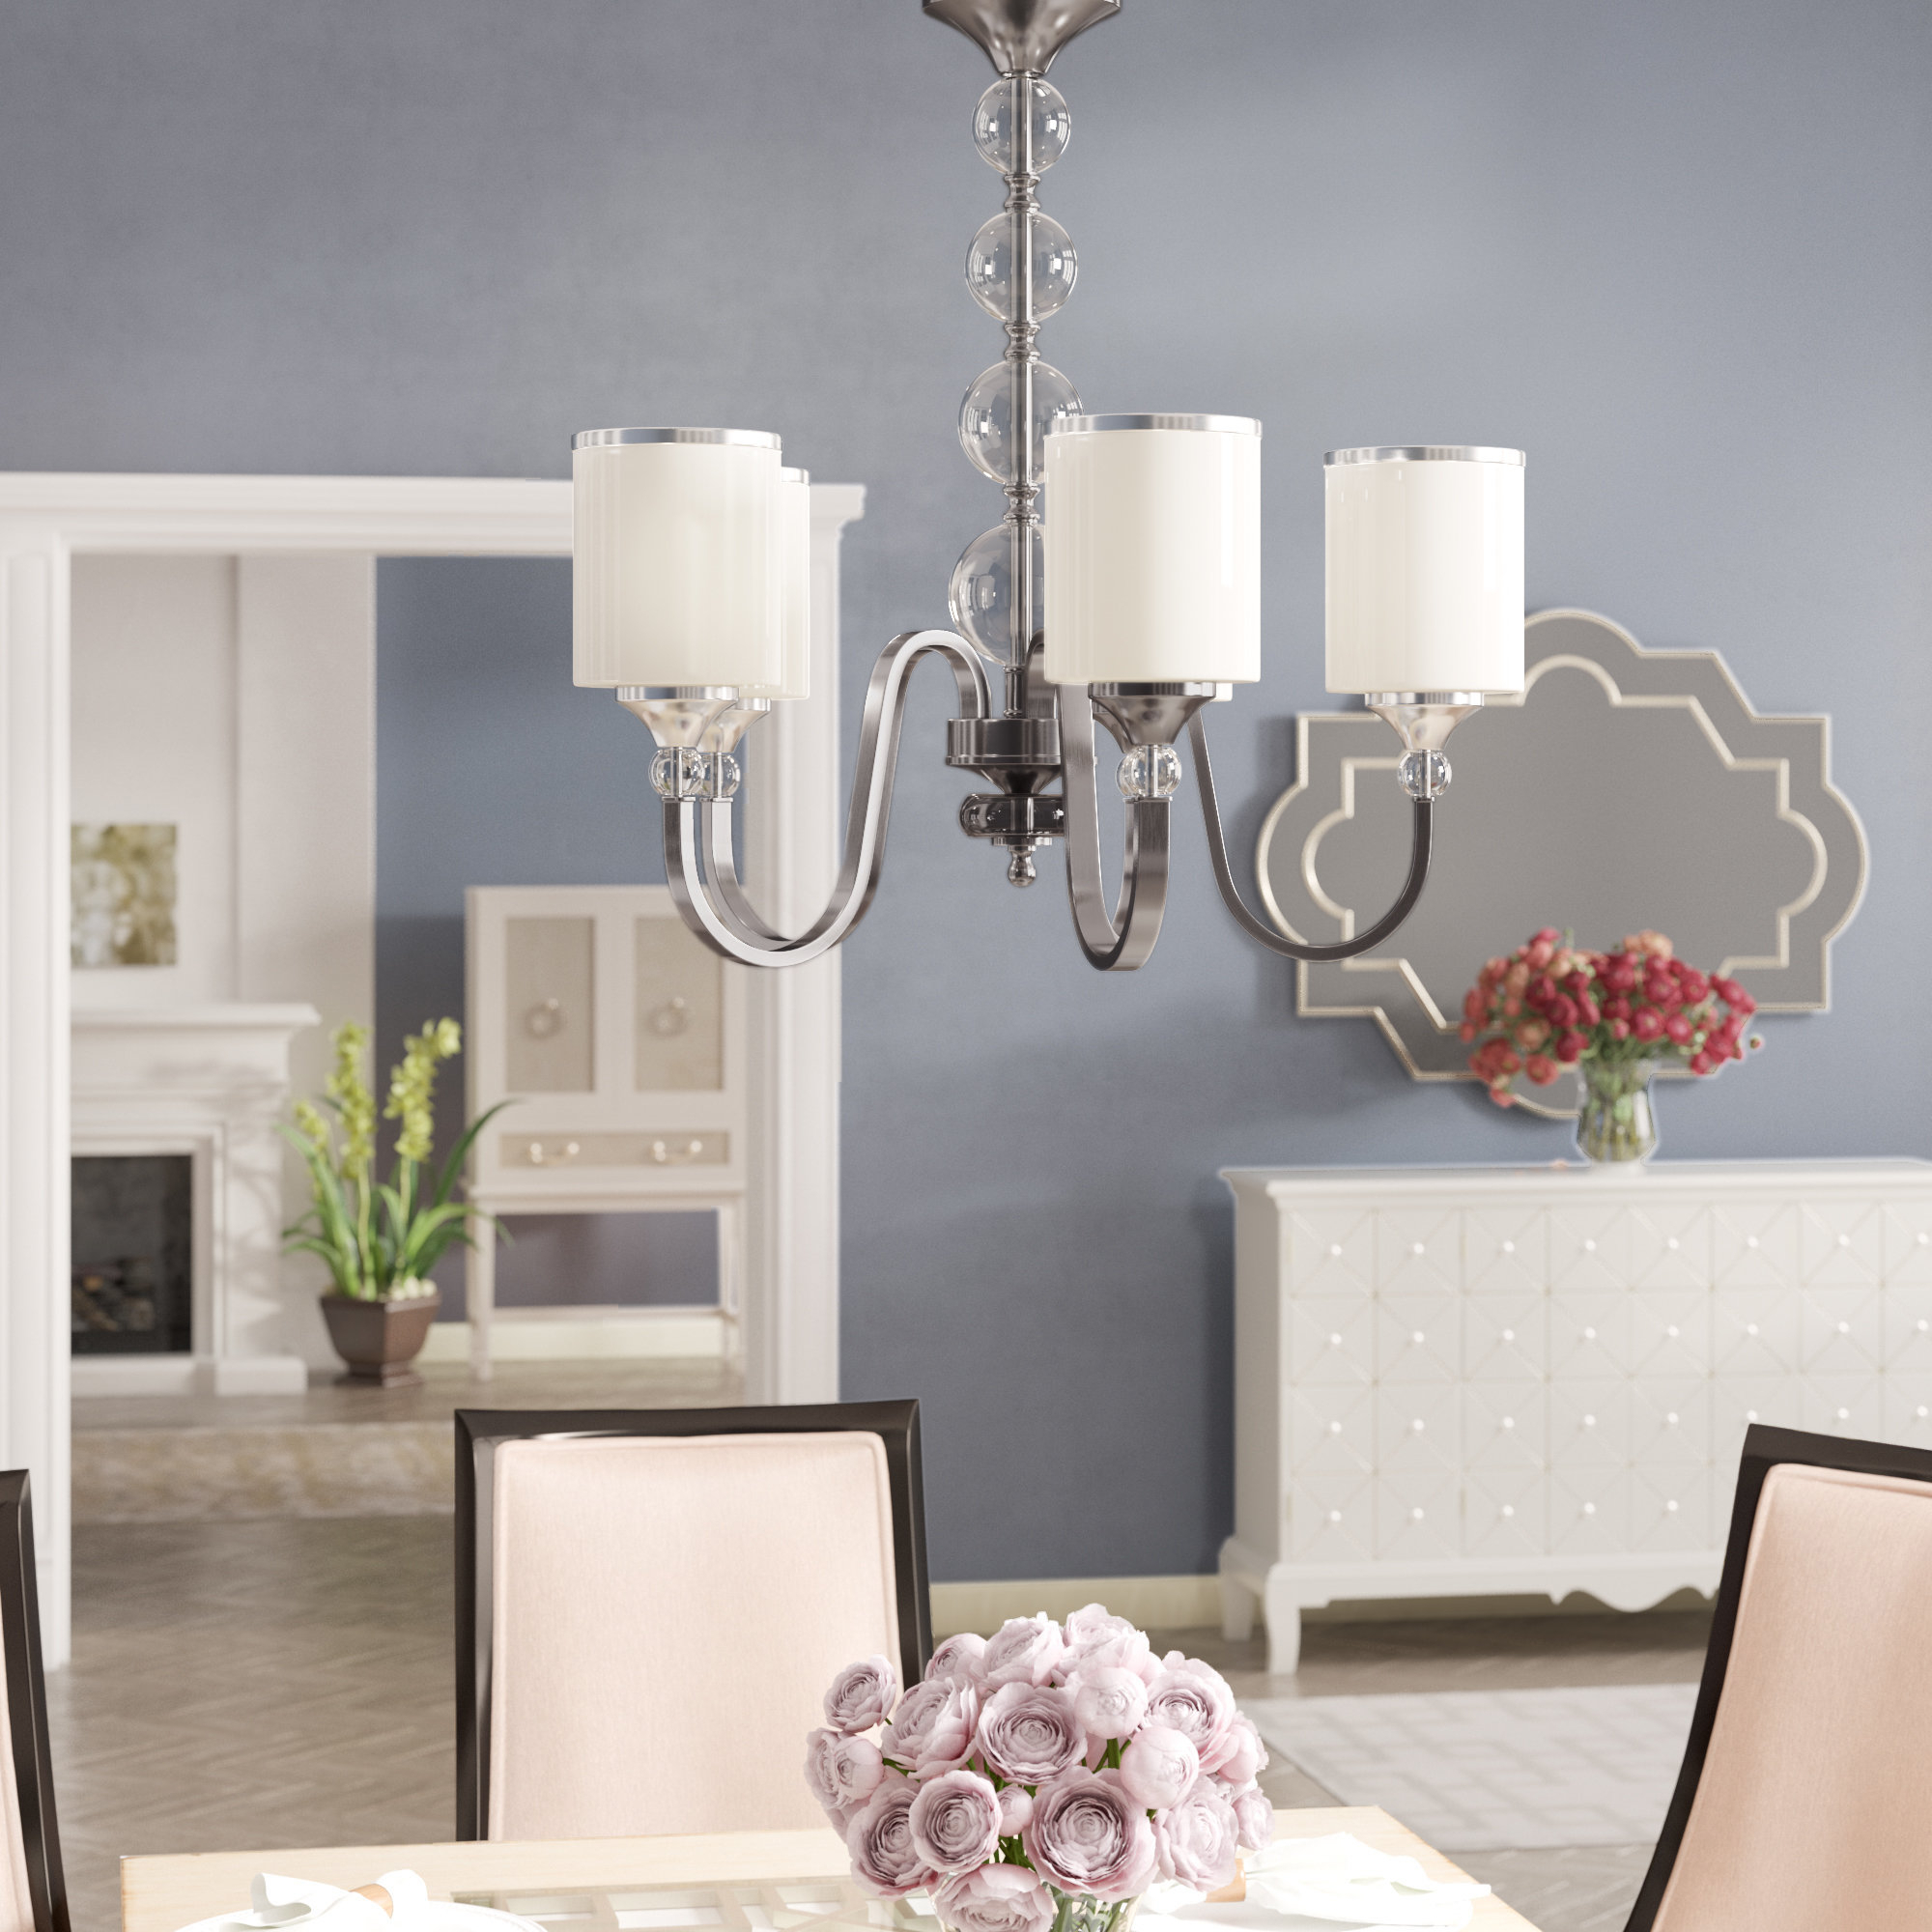 Corneau 5 Light Chandeliers With Most Up To Date Willa Arlo Interiors Carlitos 5 Light Shaded Chandelier (View 7 of 20)